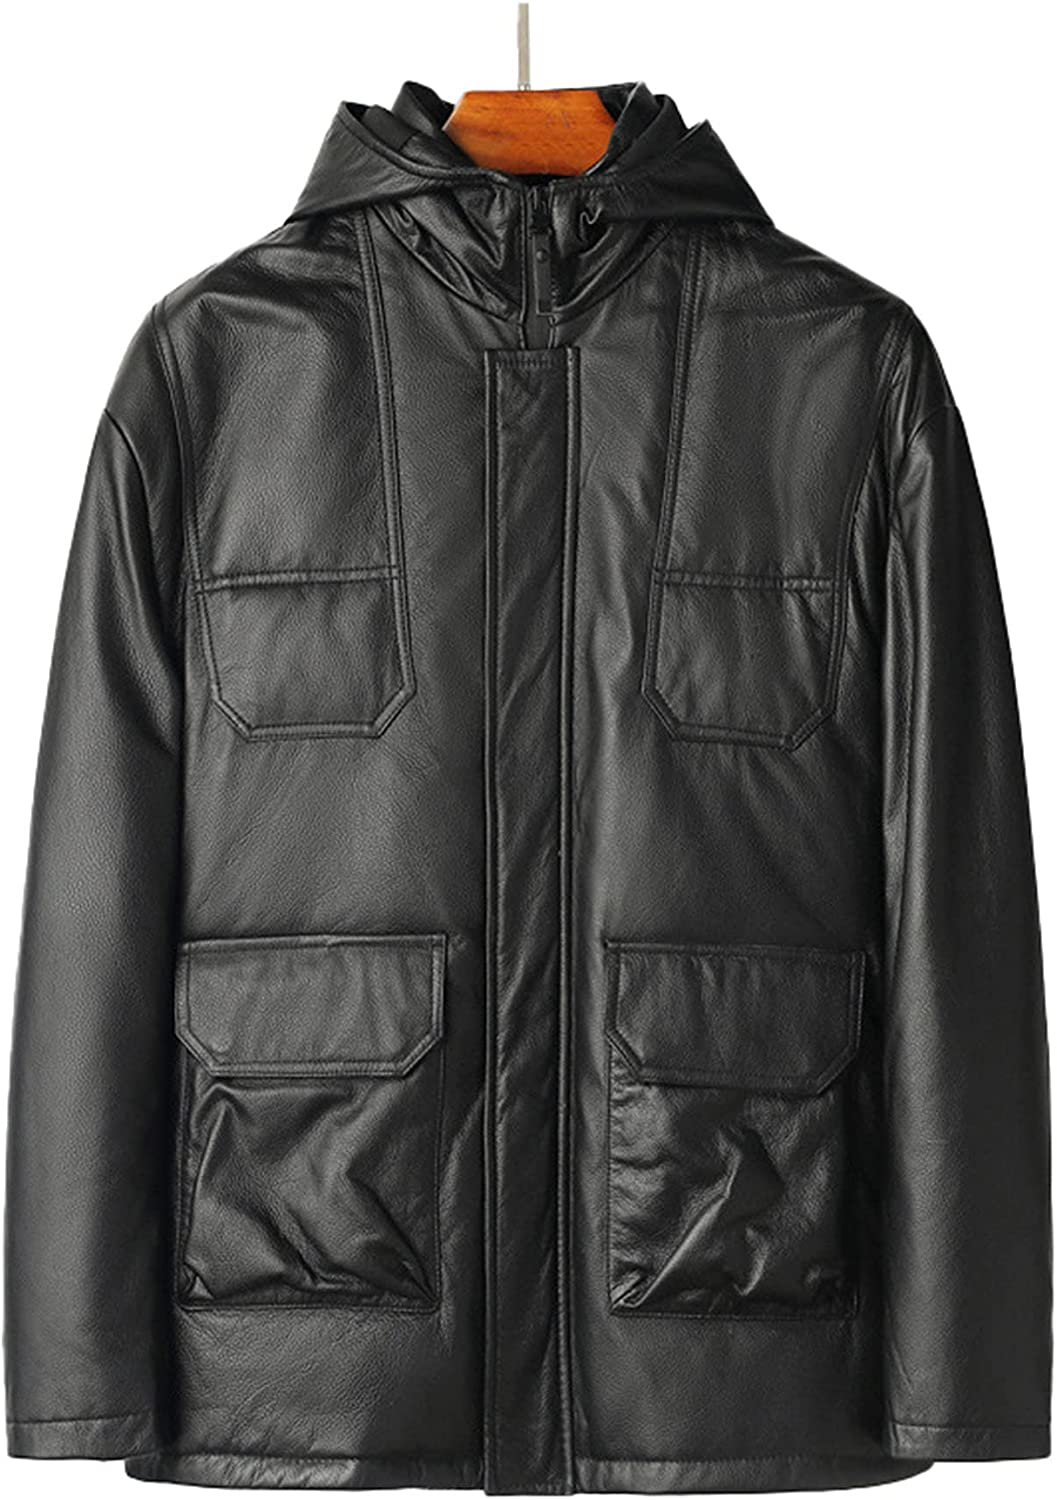 Men's Leather Down Jacket Short-Length Winter Thickened Cowhide Leather Jacket Loose Winter Warm Windproof Jacket